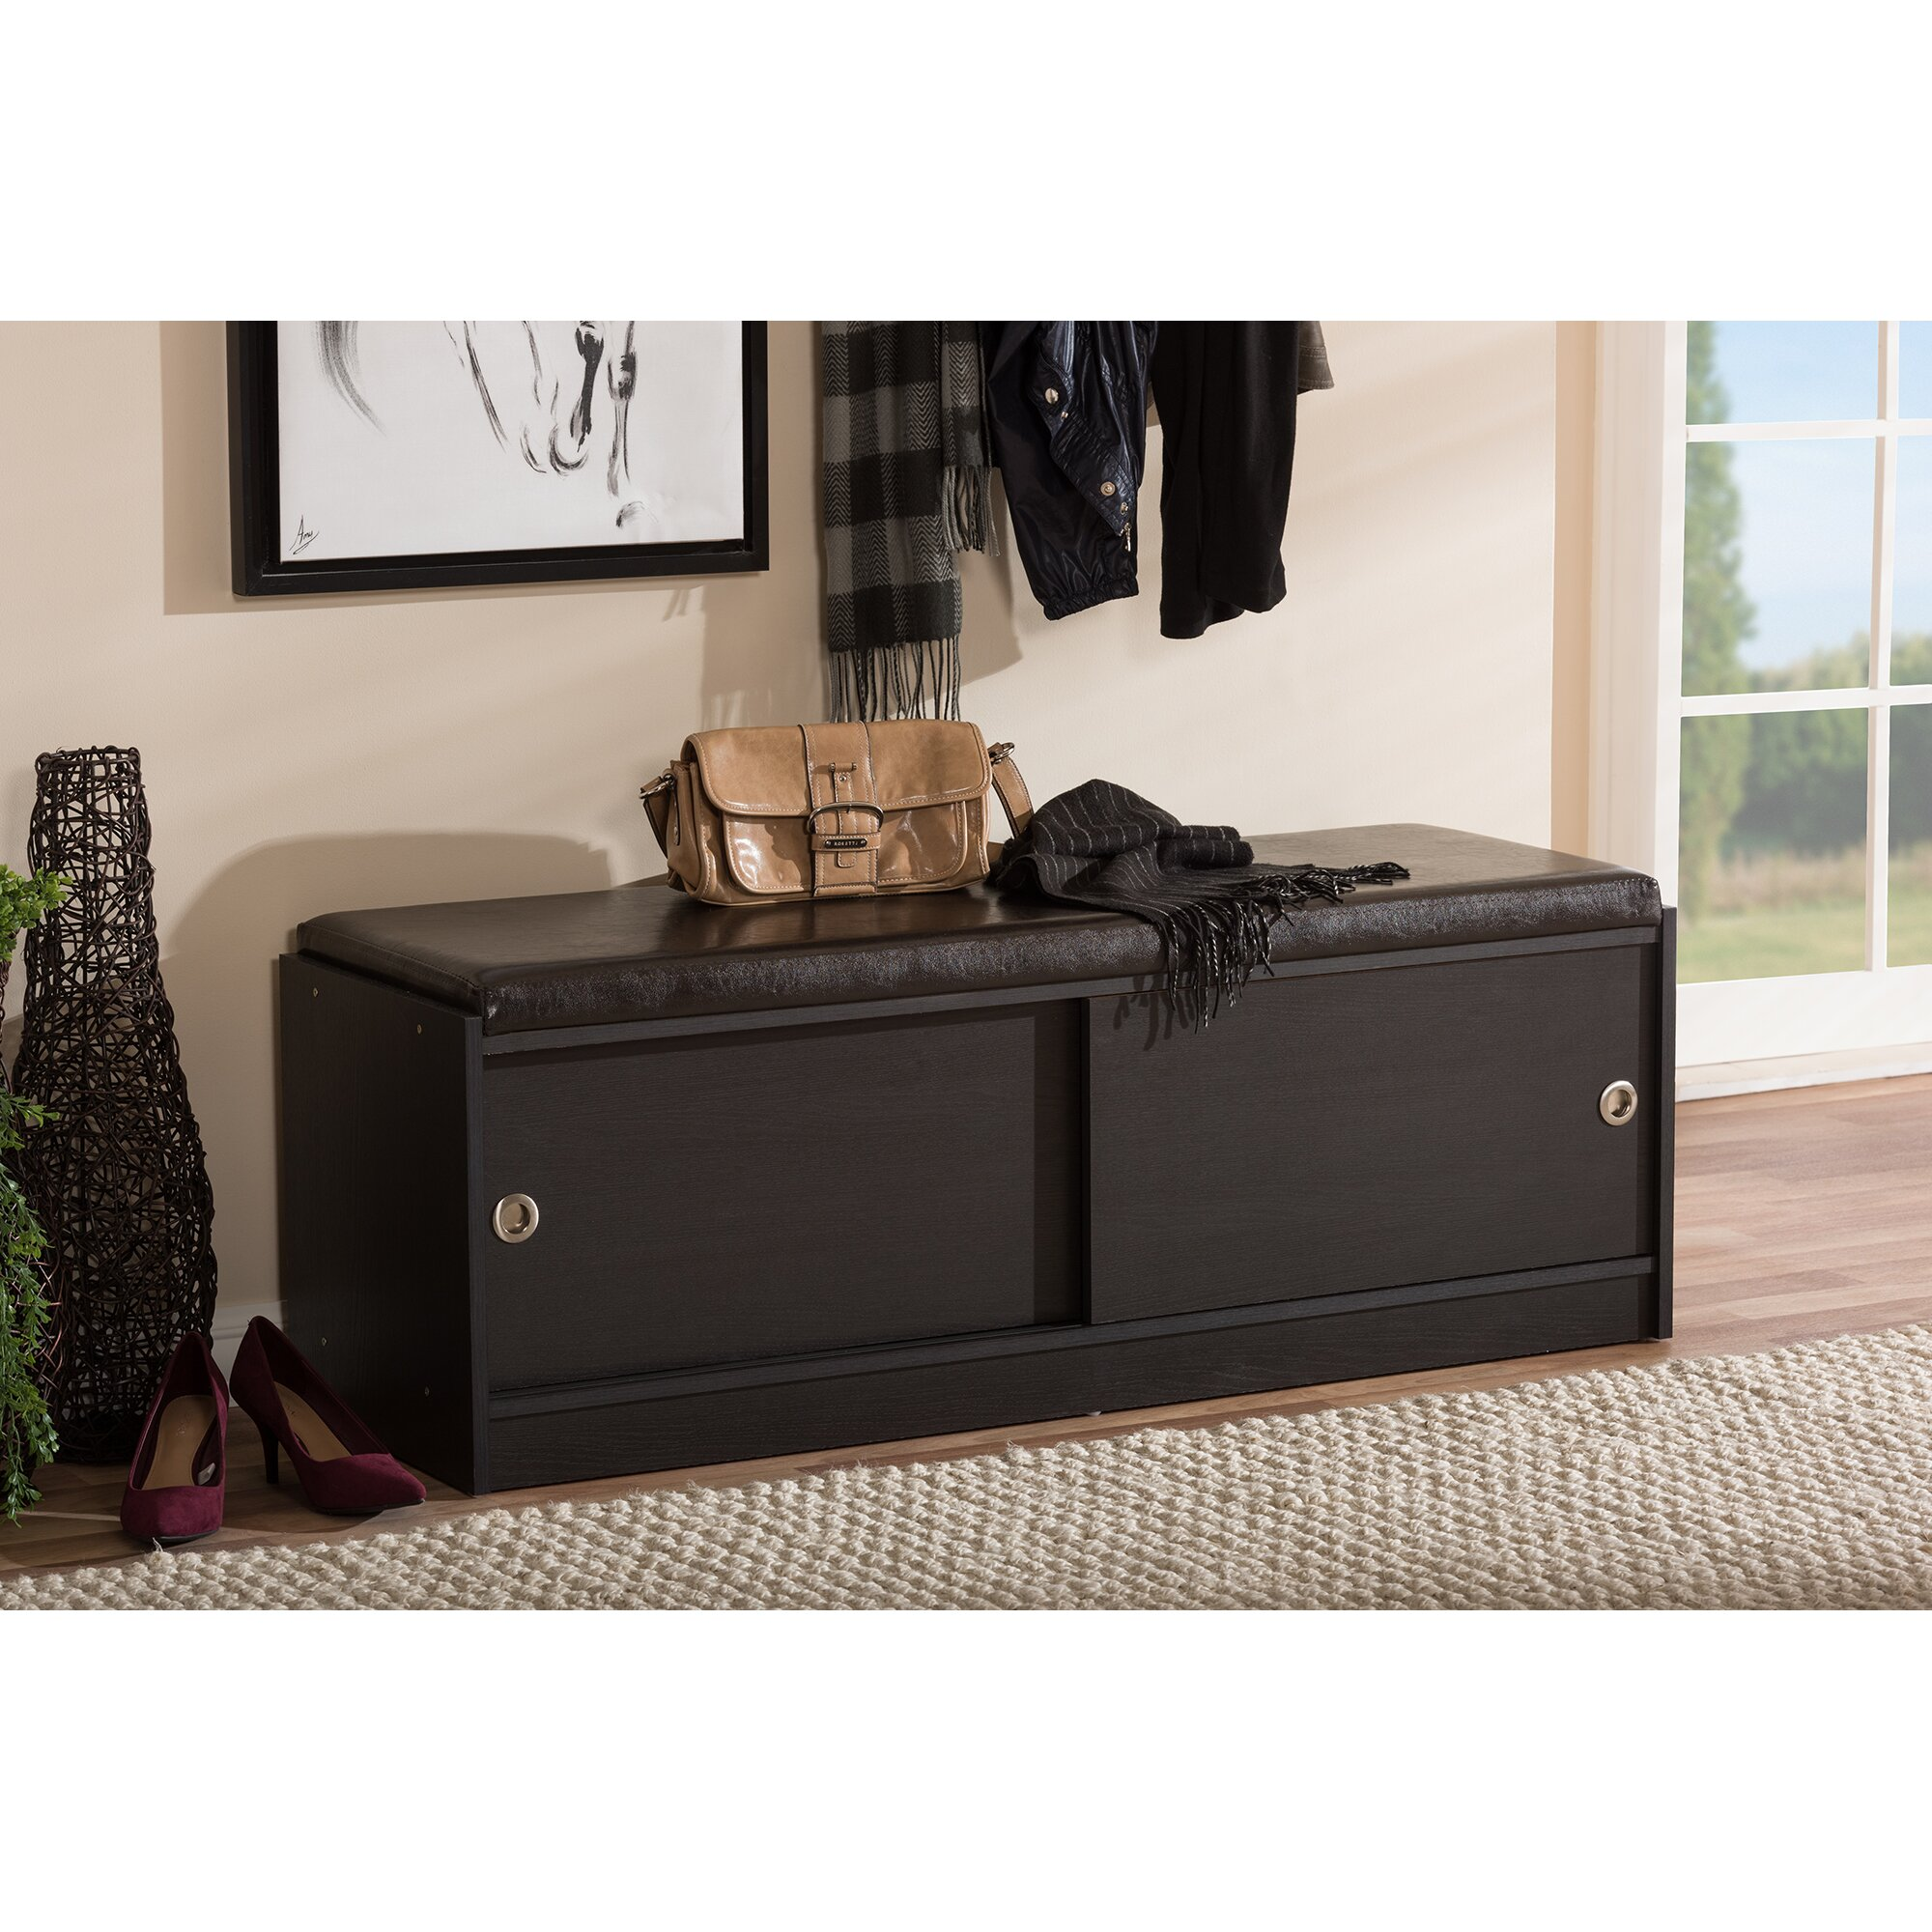 Wholesale interiors clevedon wood storage entryway bench reviews wayfair Shoe cabinet bench